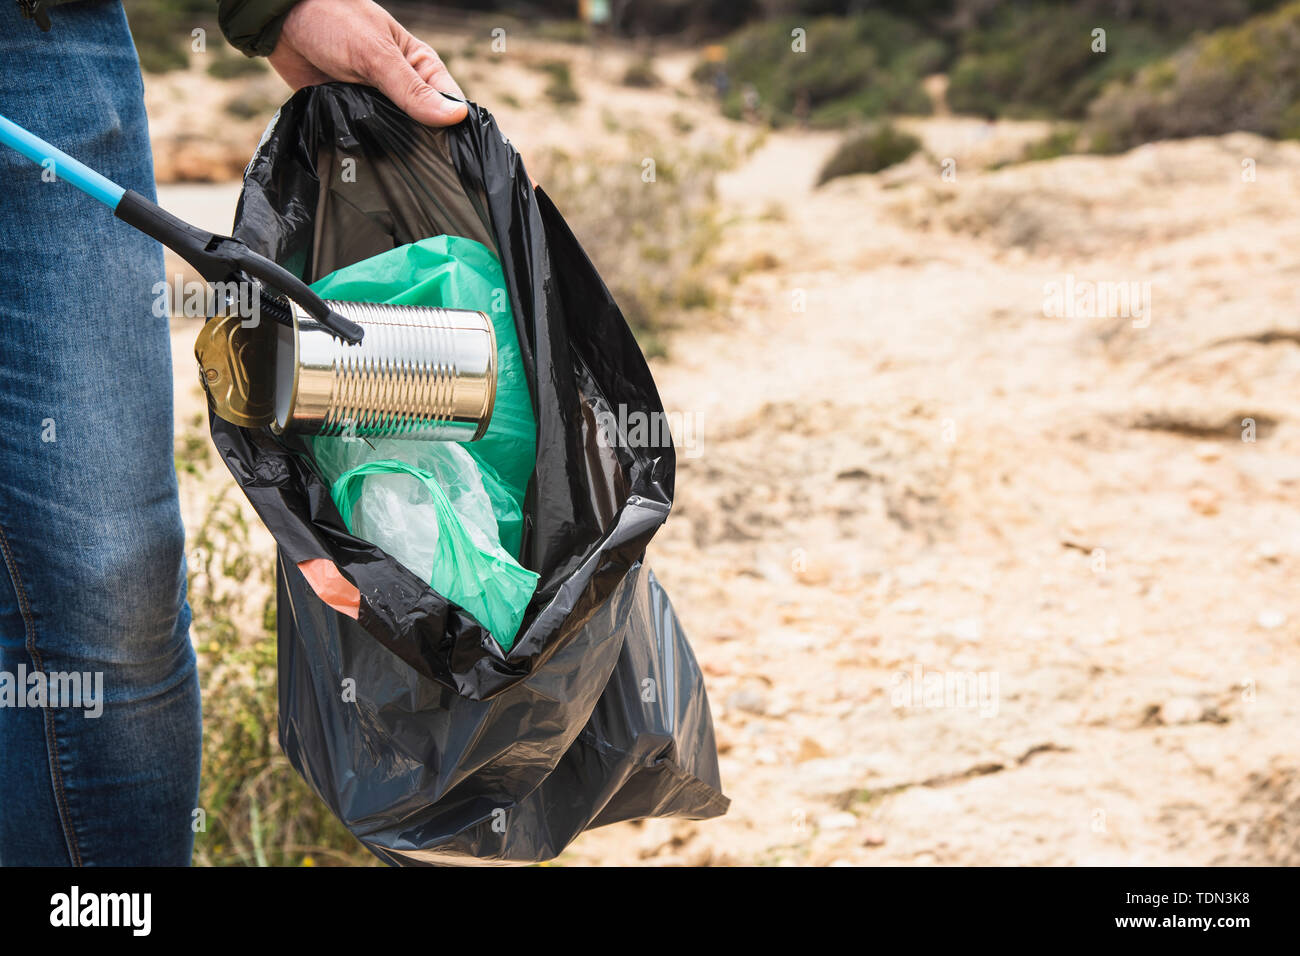 closeup of a caucasian man outdoors collecting garbage with a trash grabber stick, as an action to clean the natural environment Stock Photo